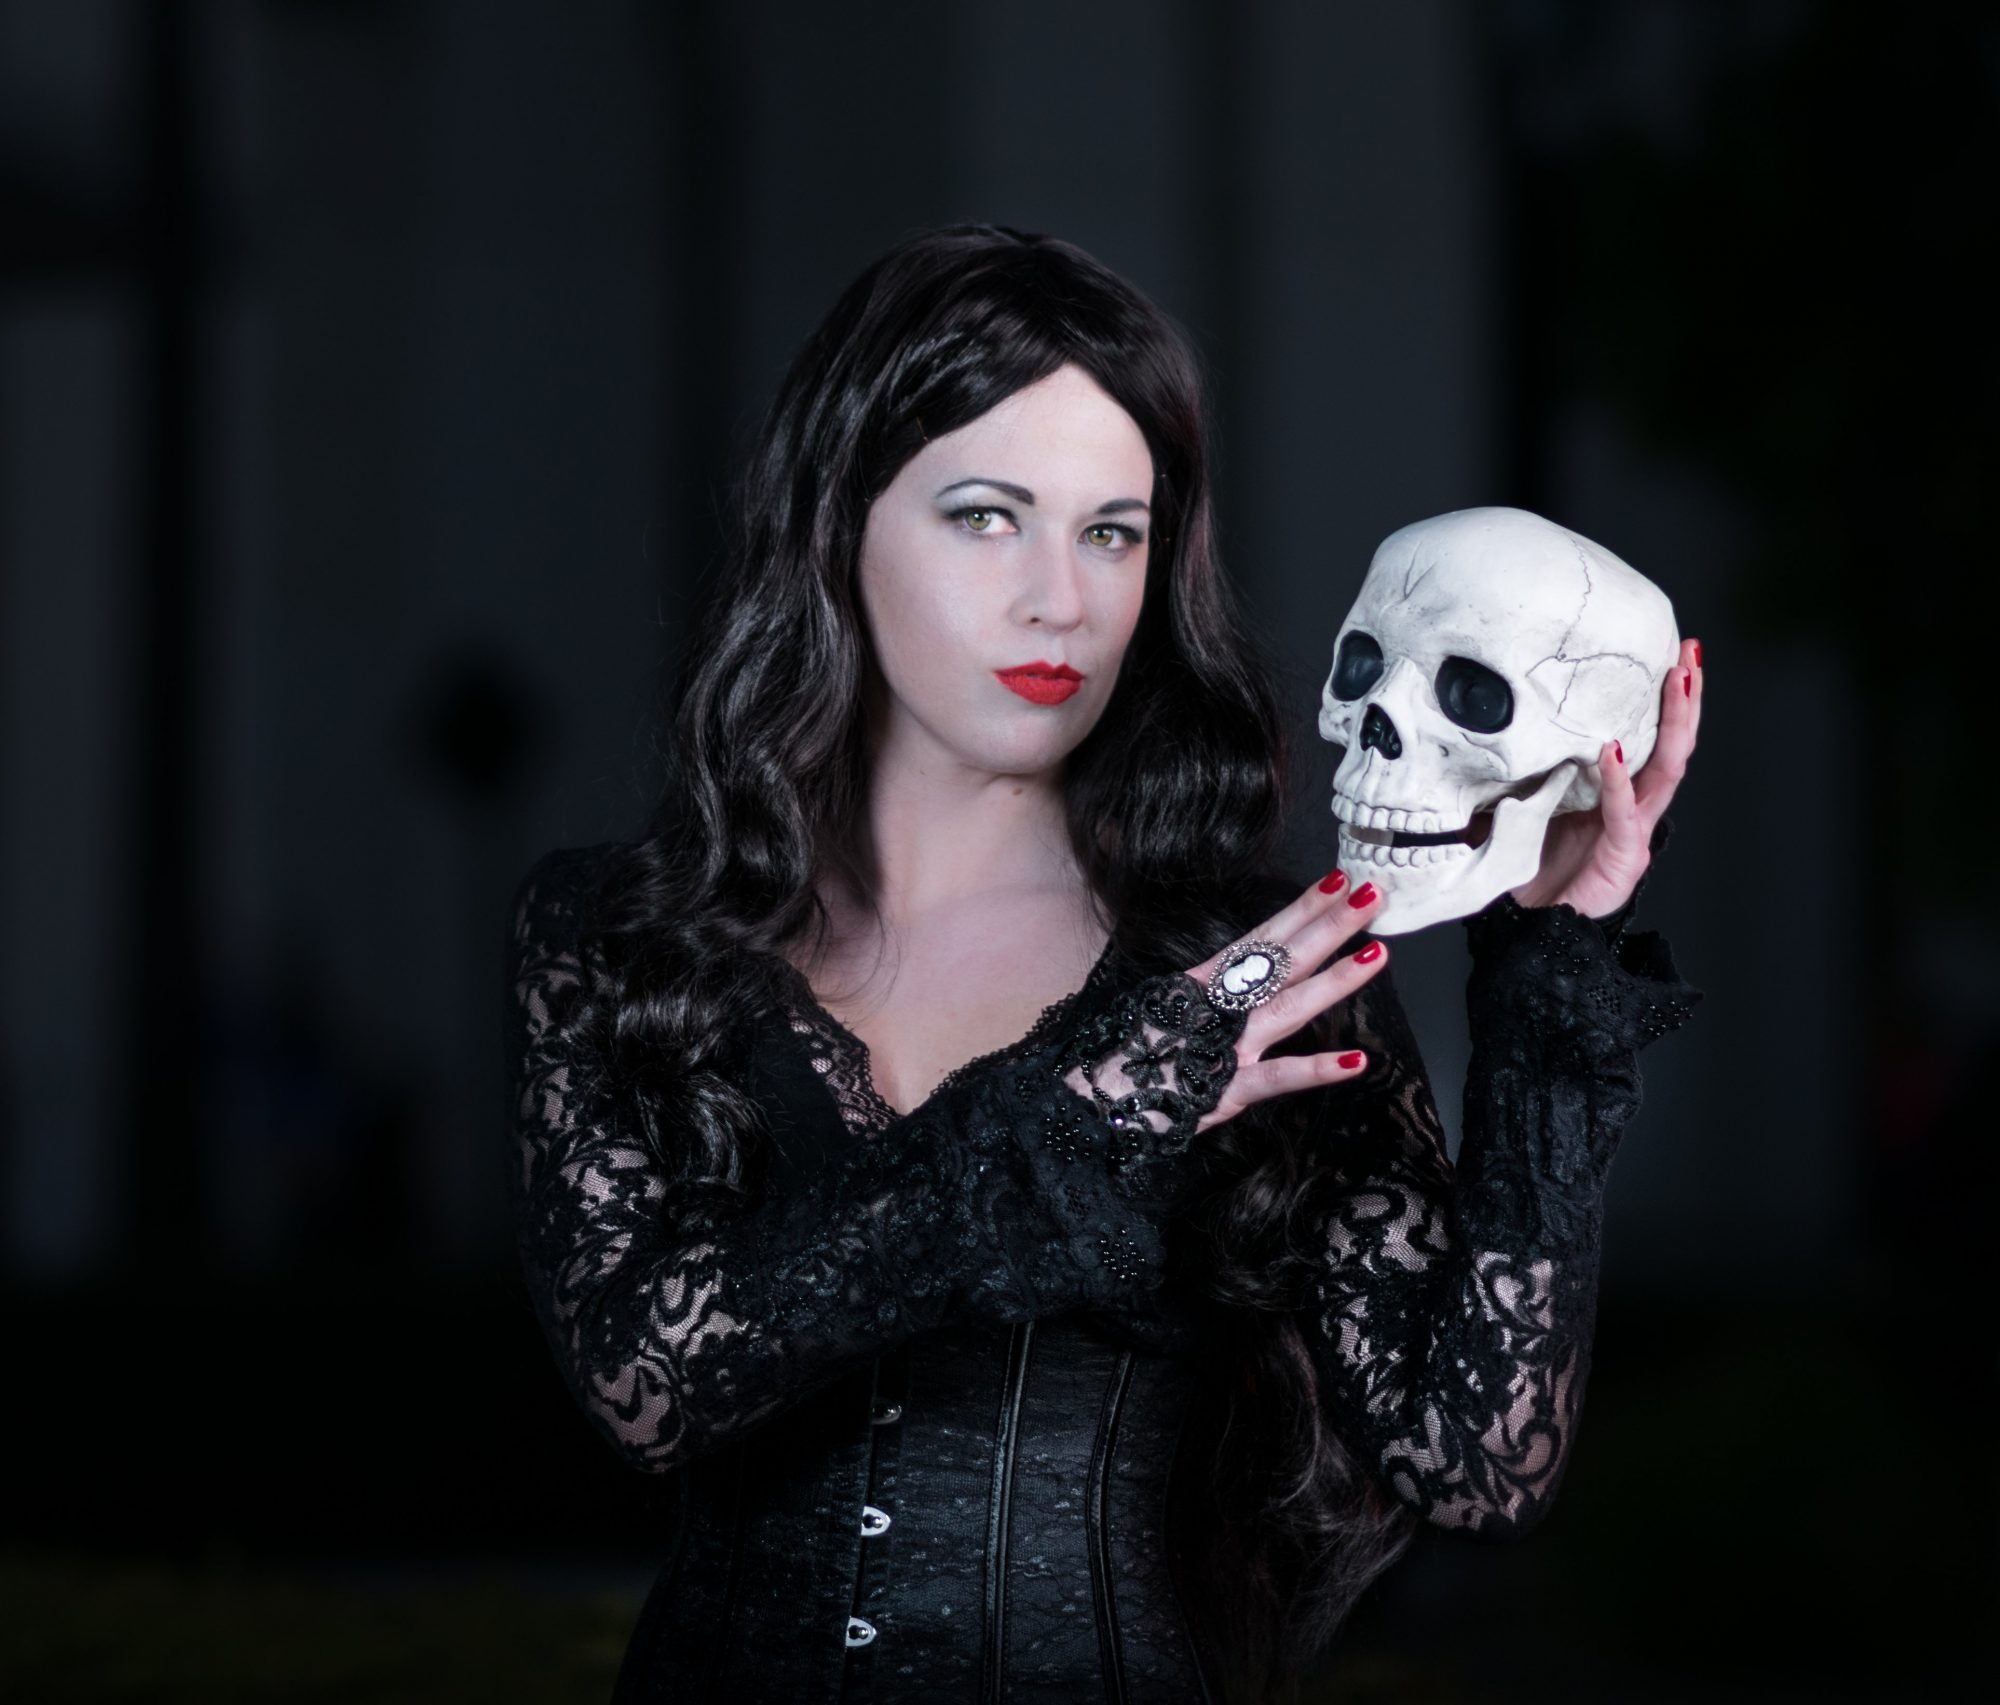 Collectress Morticia by Shutterbug.Sam